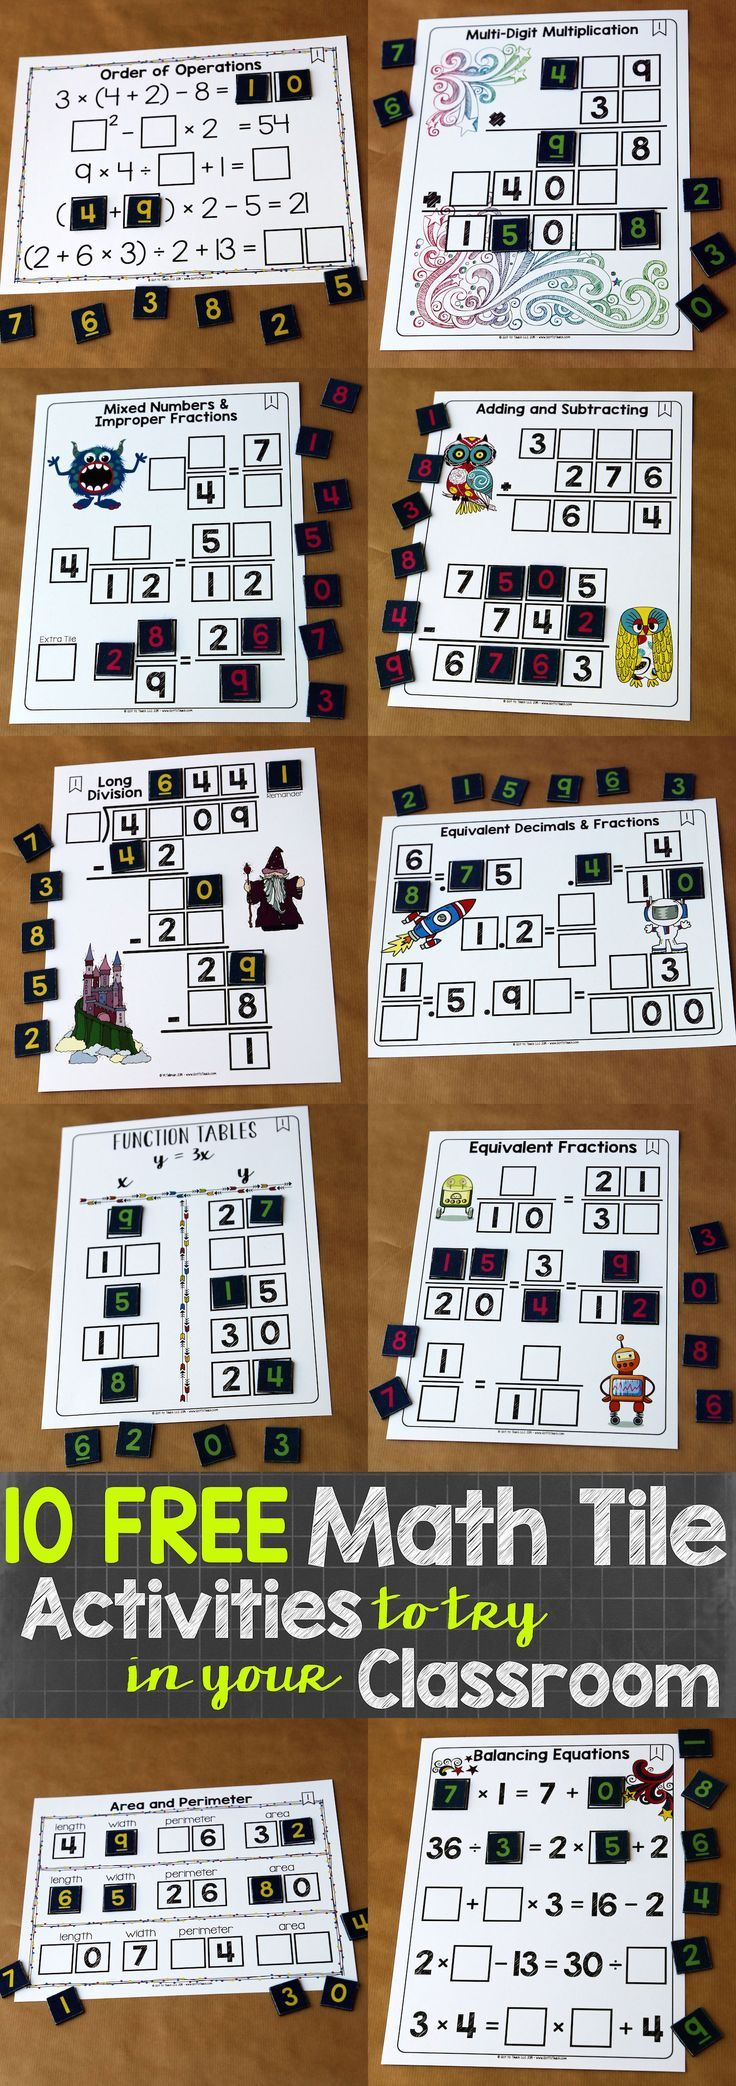 Use math tile activities as an alternative to worksheets. FREE ...